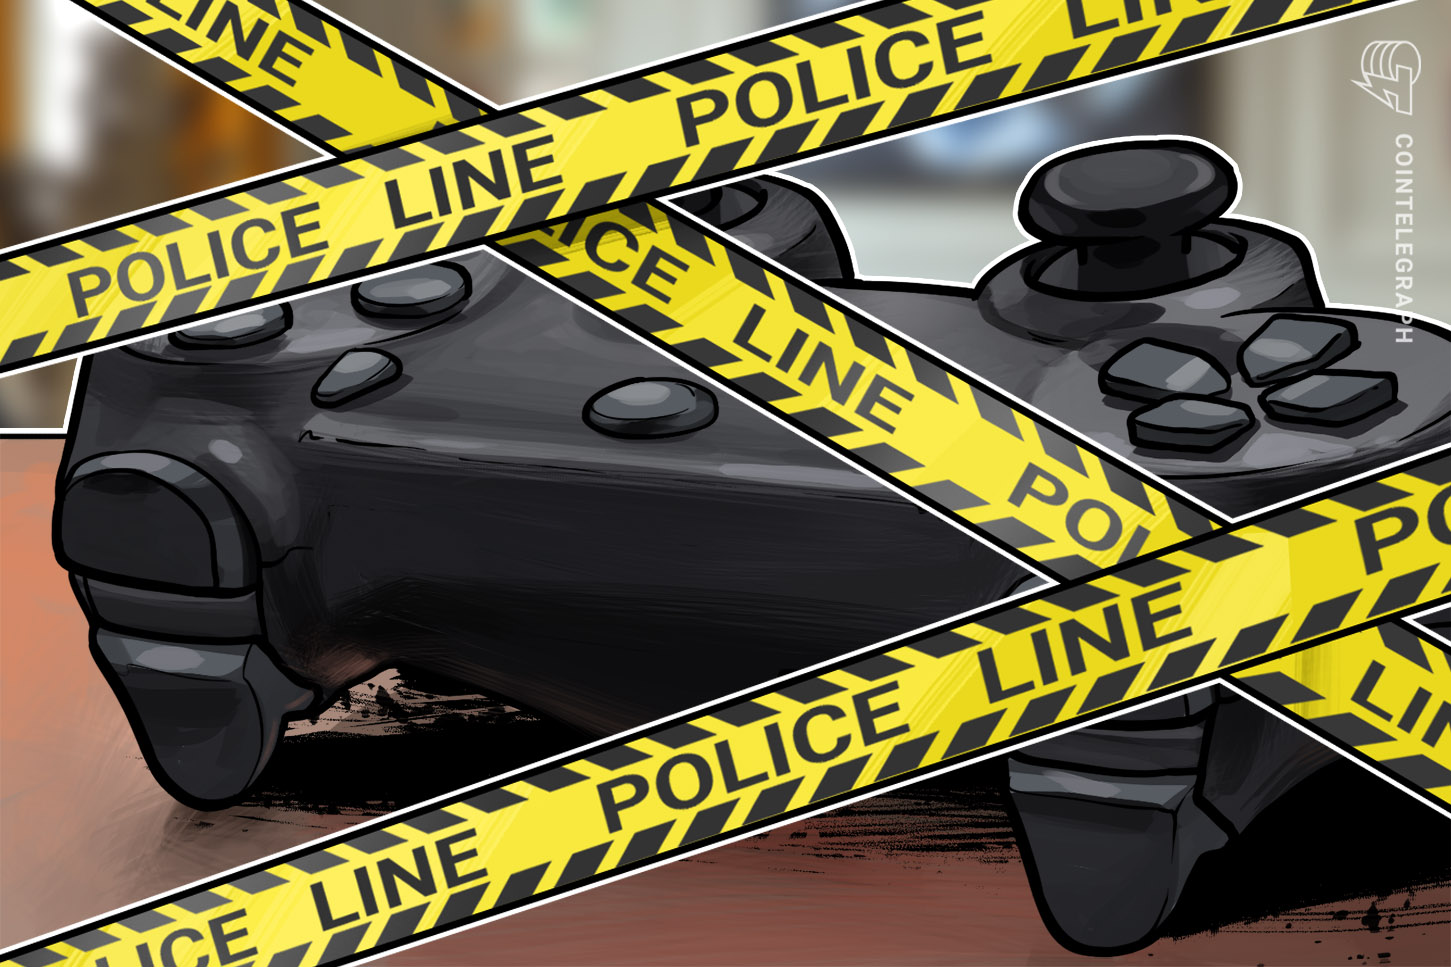 Seized PS4 consoles in Ukraine used for FIFA accounts, not crypto mining